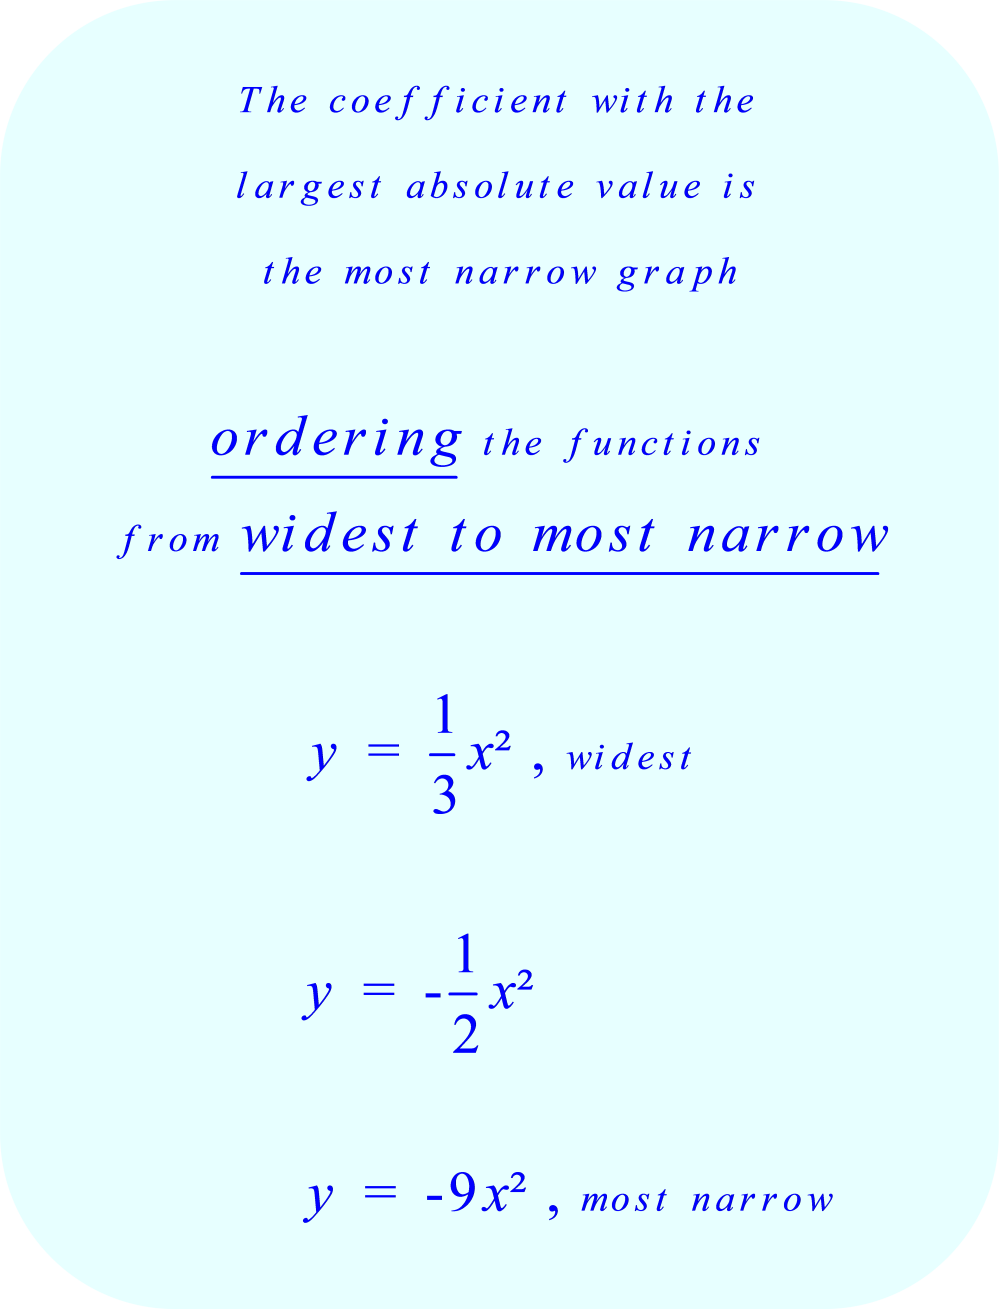 graph and order quadratic functions